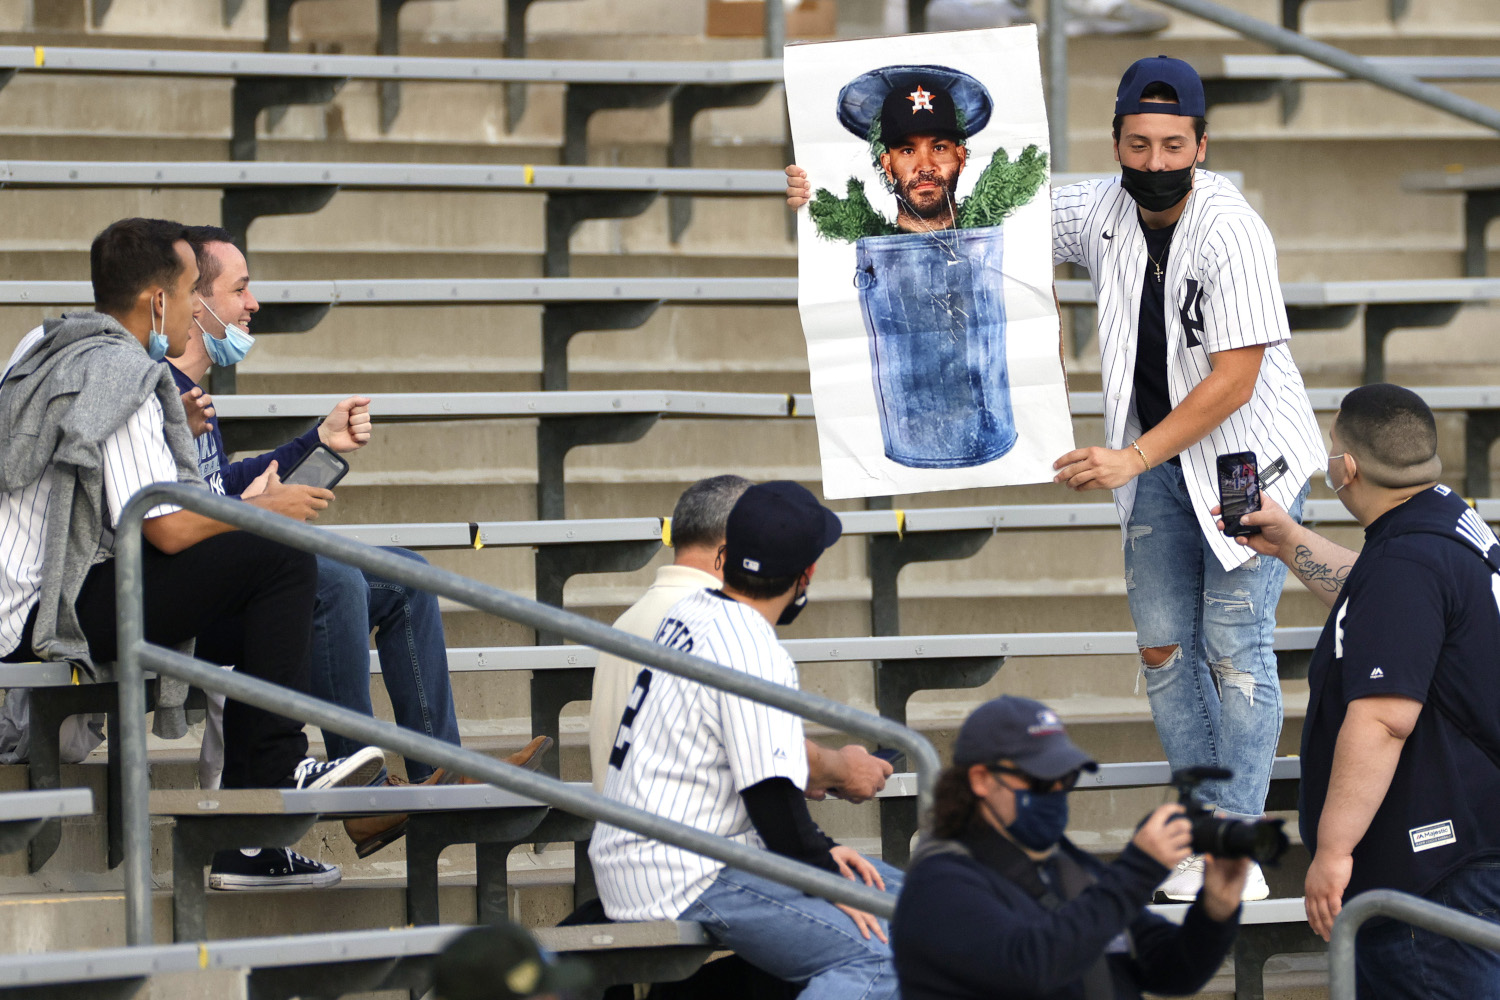 New York Yankees Fans Unleash Pent-up Frustration at Visiting Houston Astros